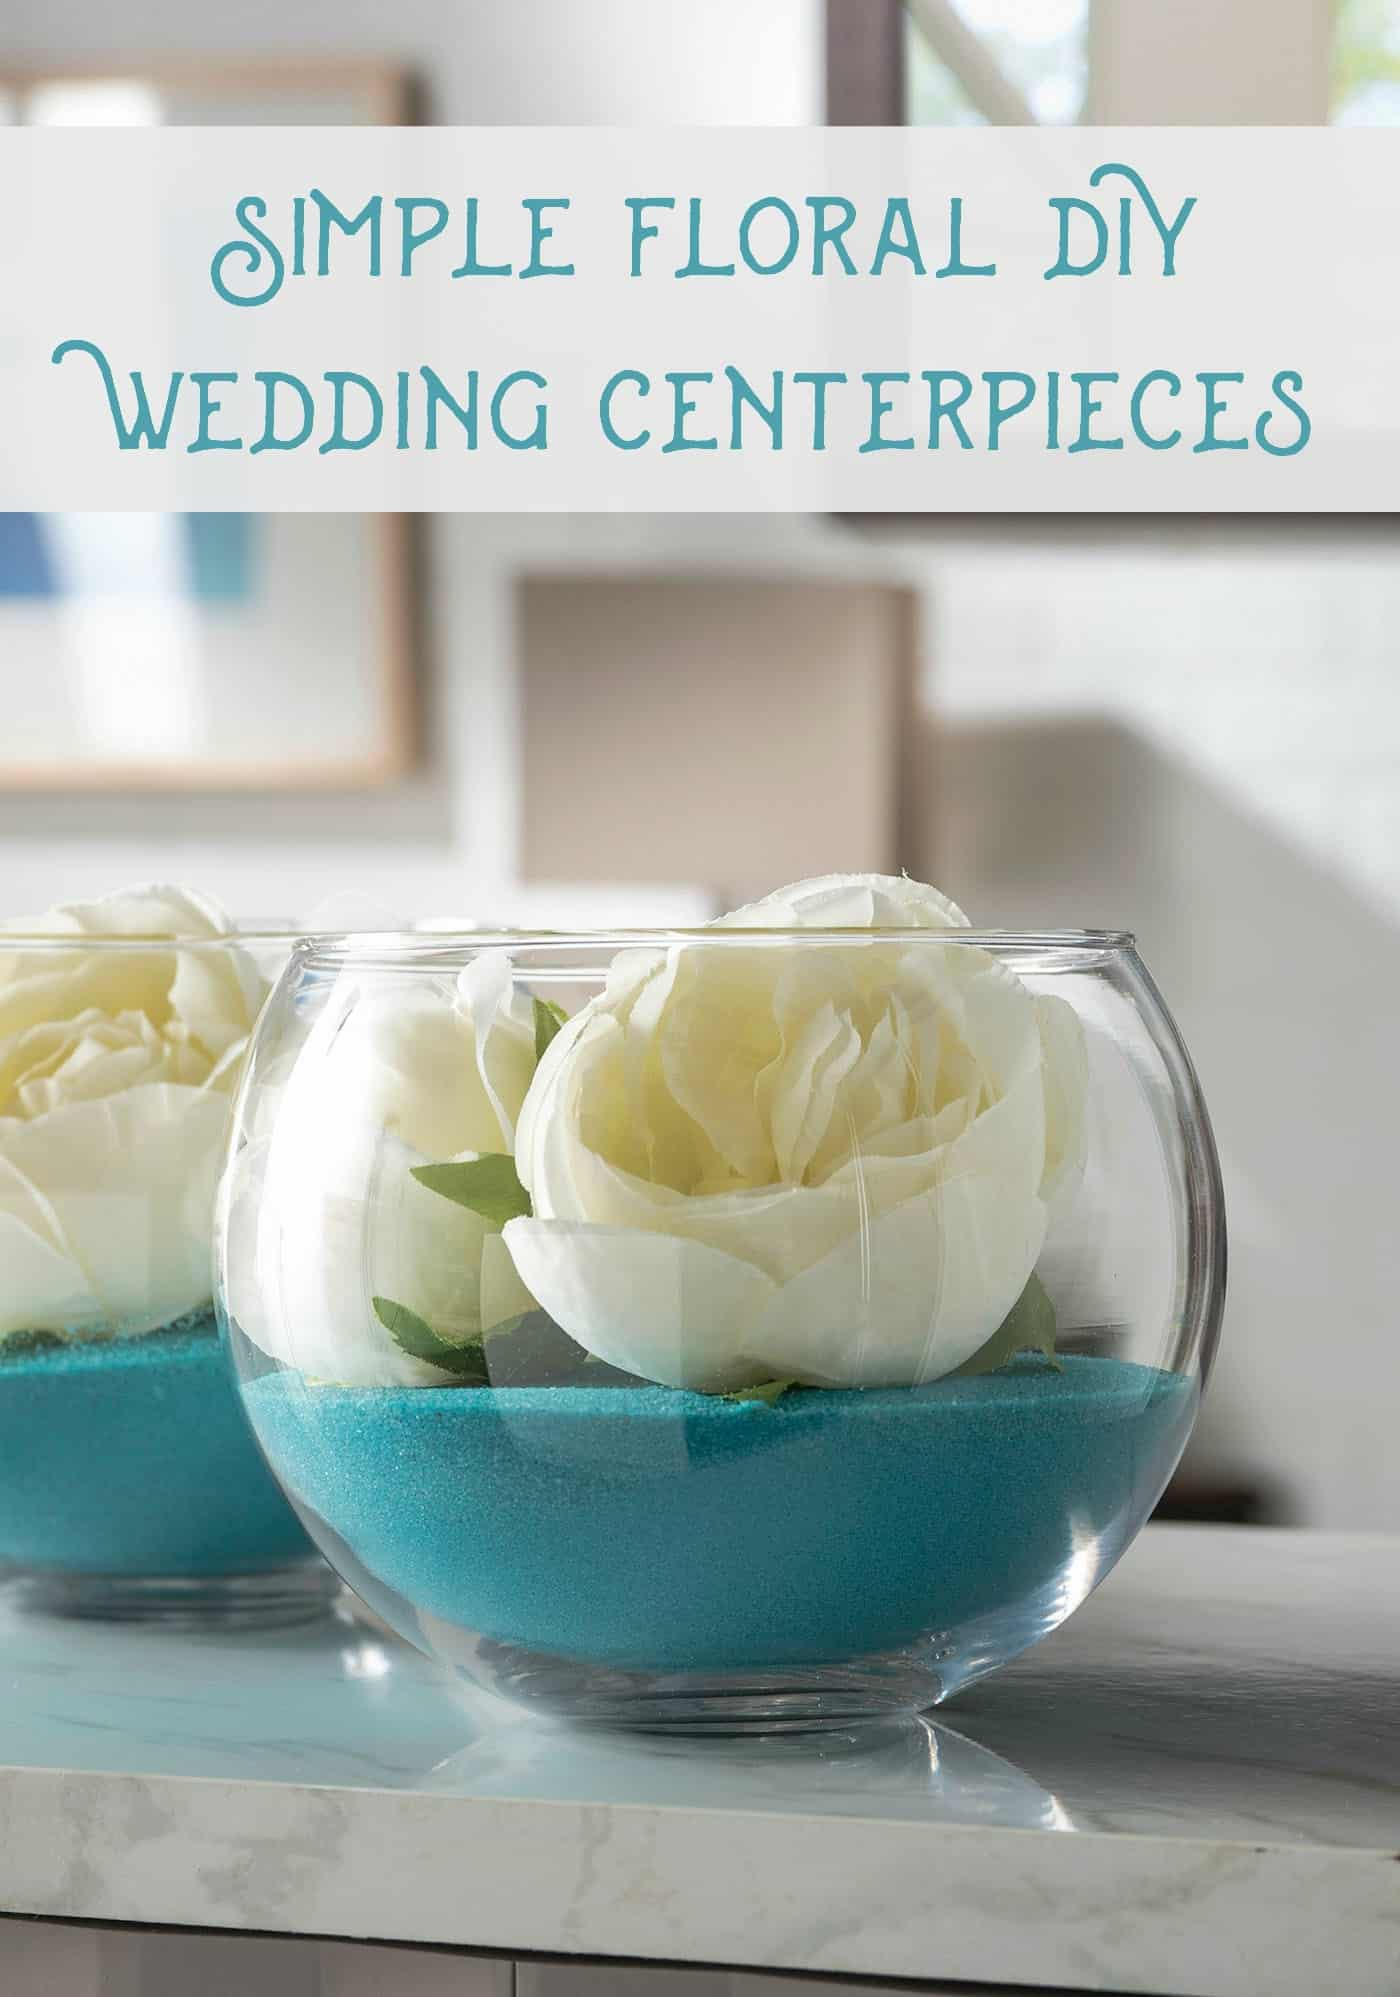 Quick floral diy wedding centerpieces candy